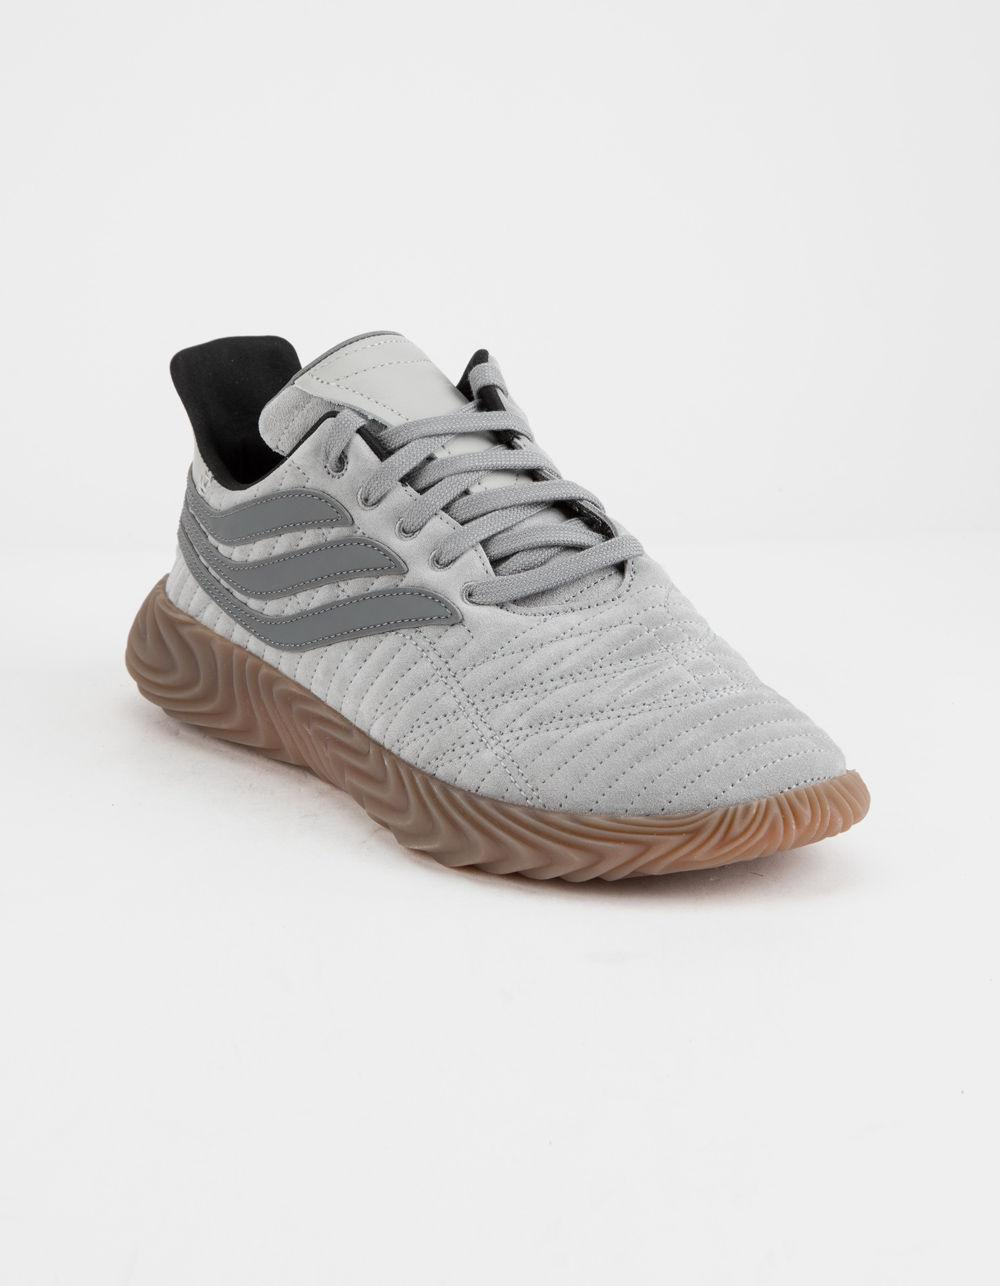 meet fa3f0 49fa1 Lyst - adidas Sobakov Gray Shoes in Gray for Men